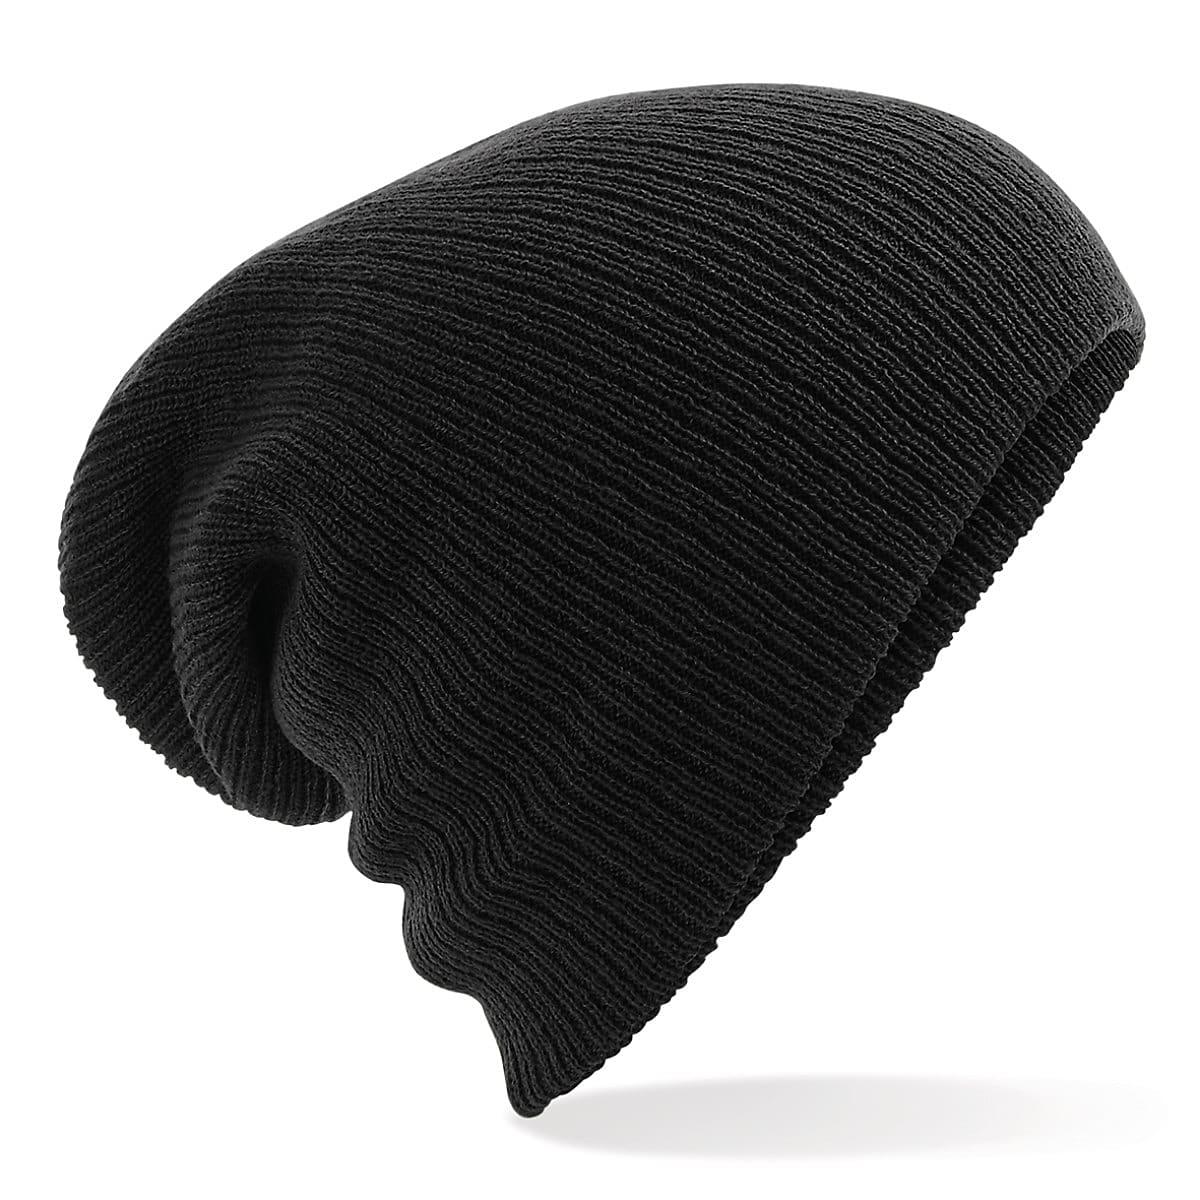 Beechfield Heavy Gauge Slouch Beanie Hat in Black (Product Code: B449)